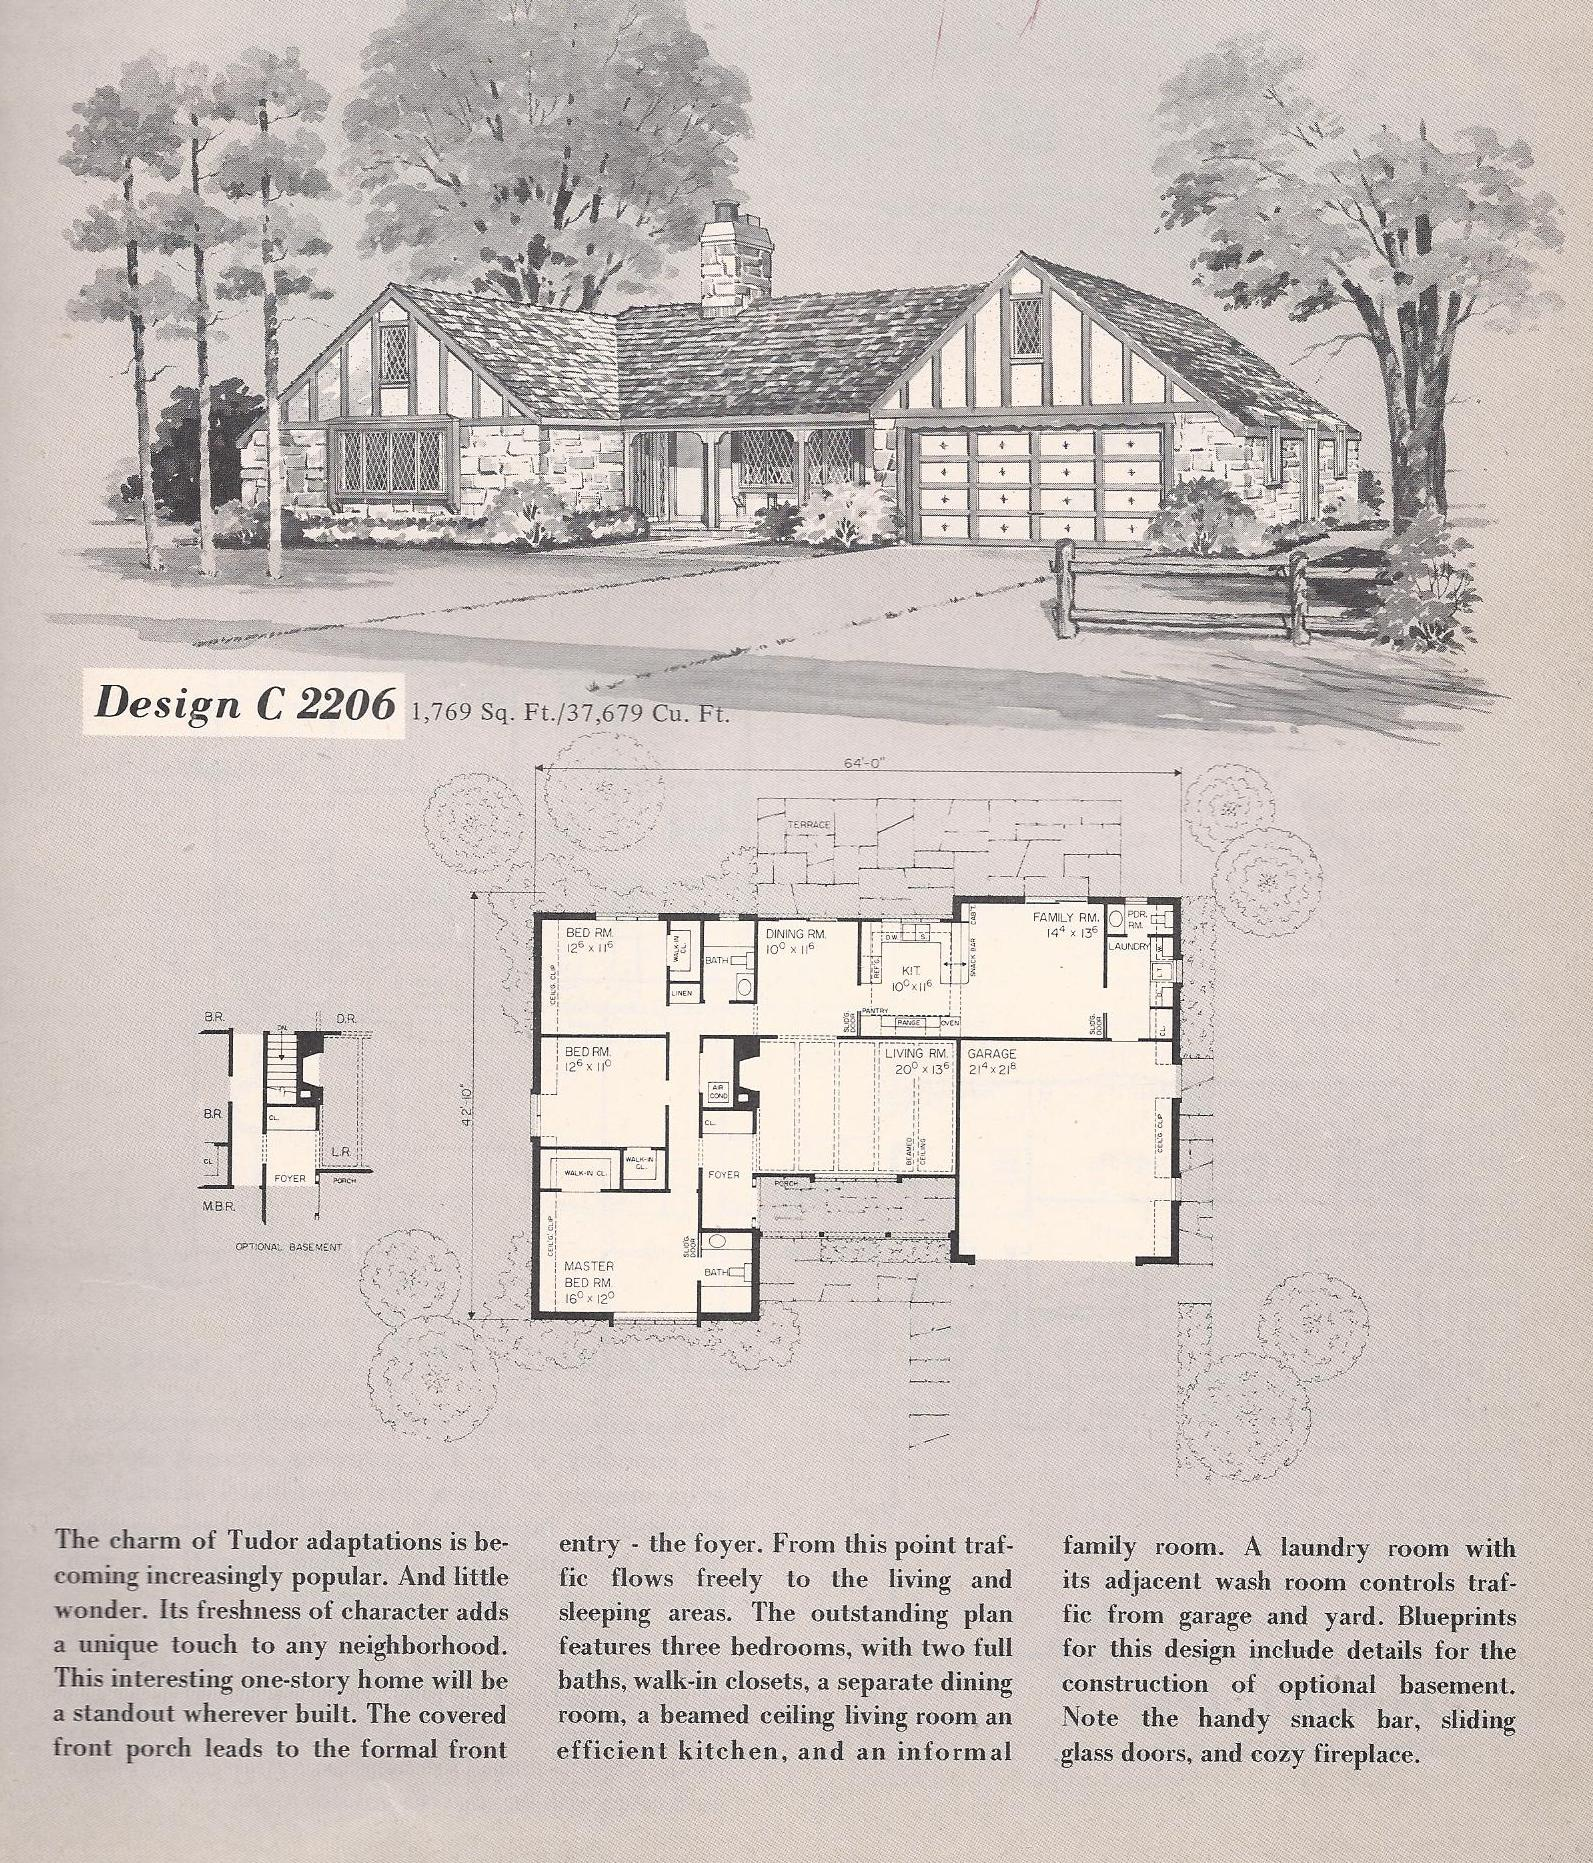 Vintage house plans 2206 antique alter ego for Classic tudor house plans